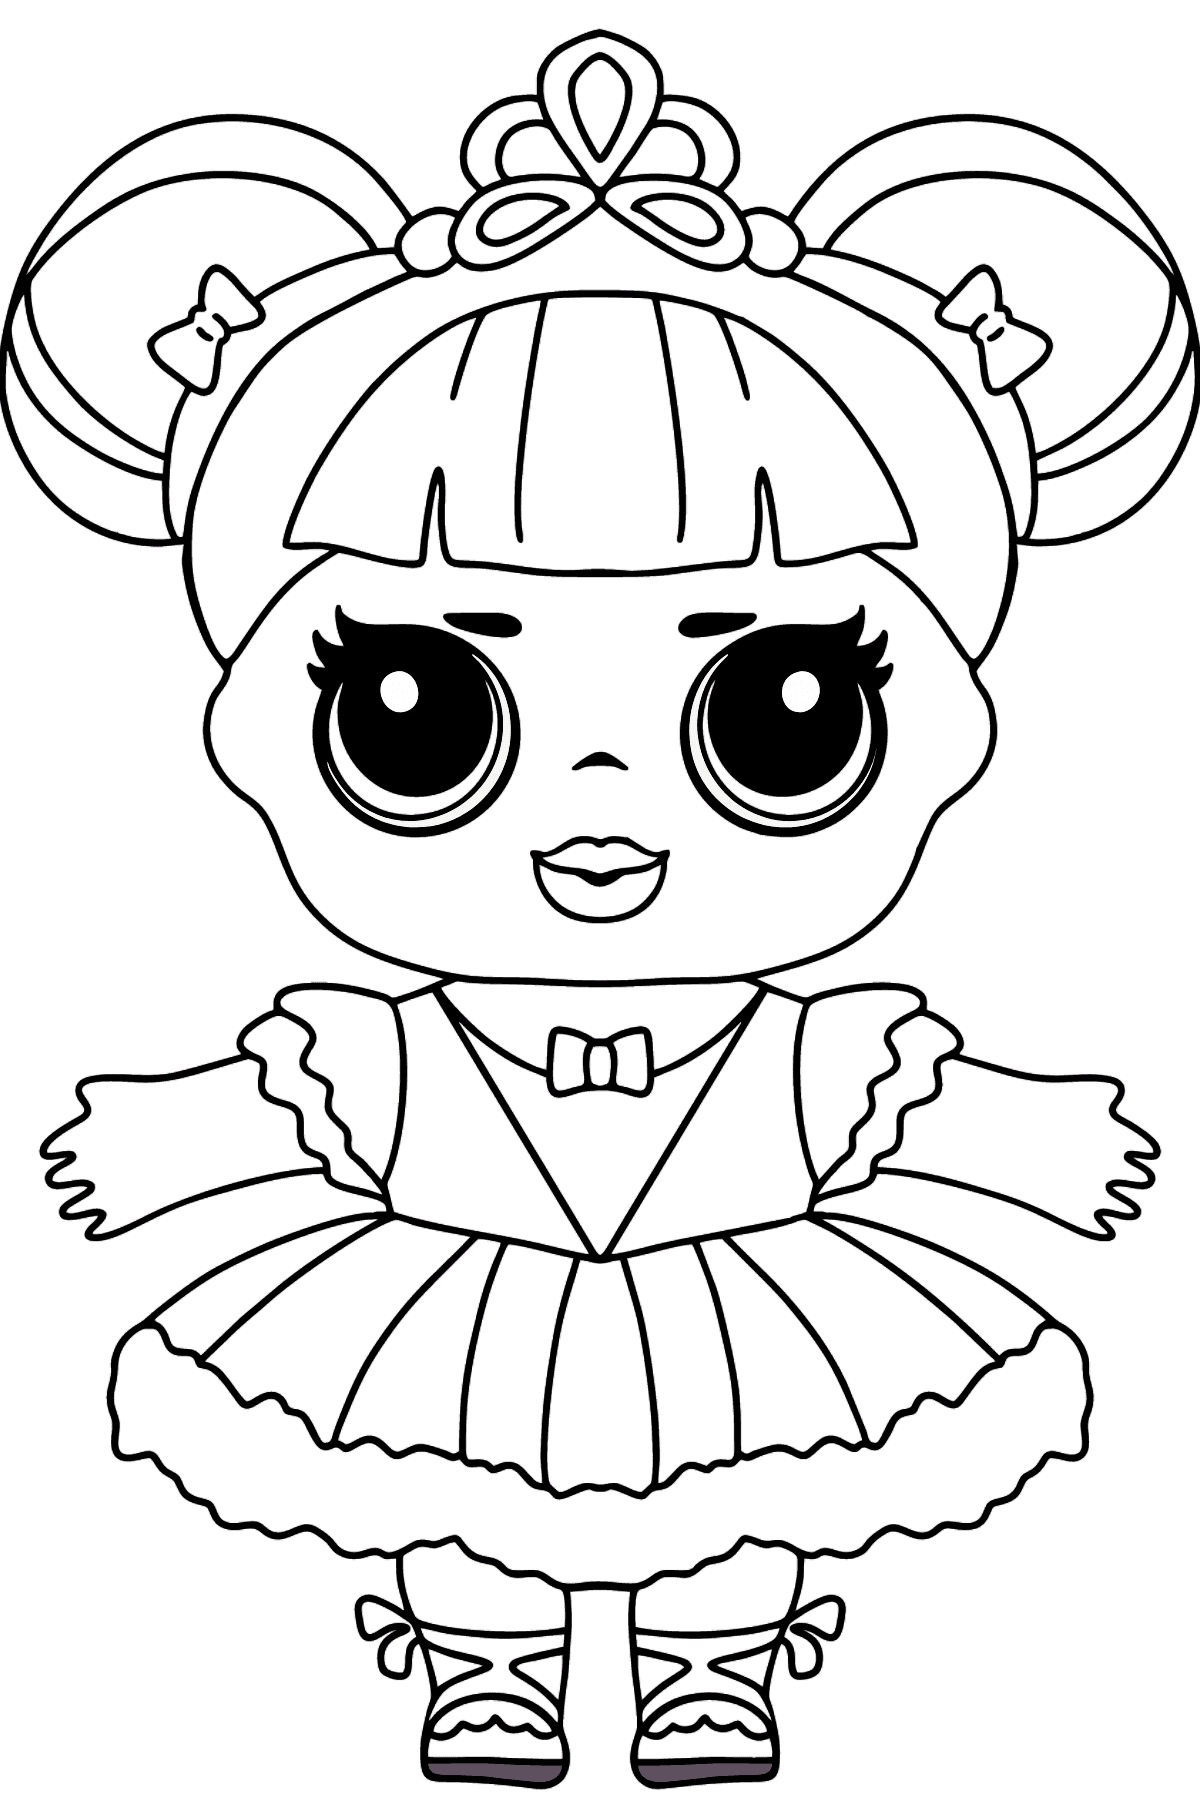 L.O.L. Surprise Doll Center Stage - Coloring Pages for Kids